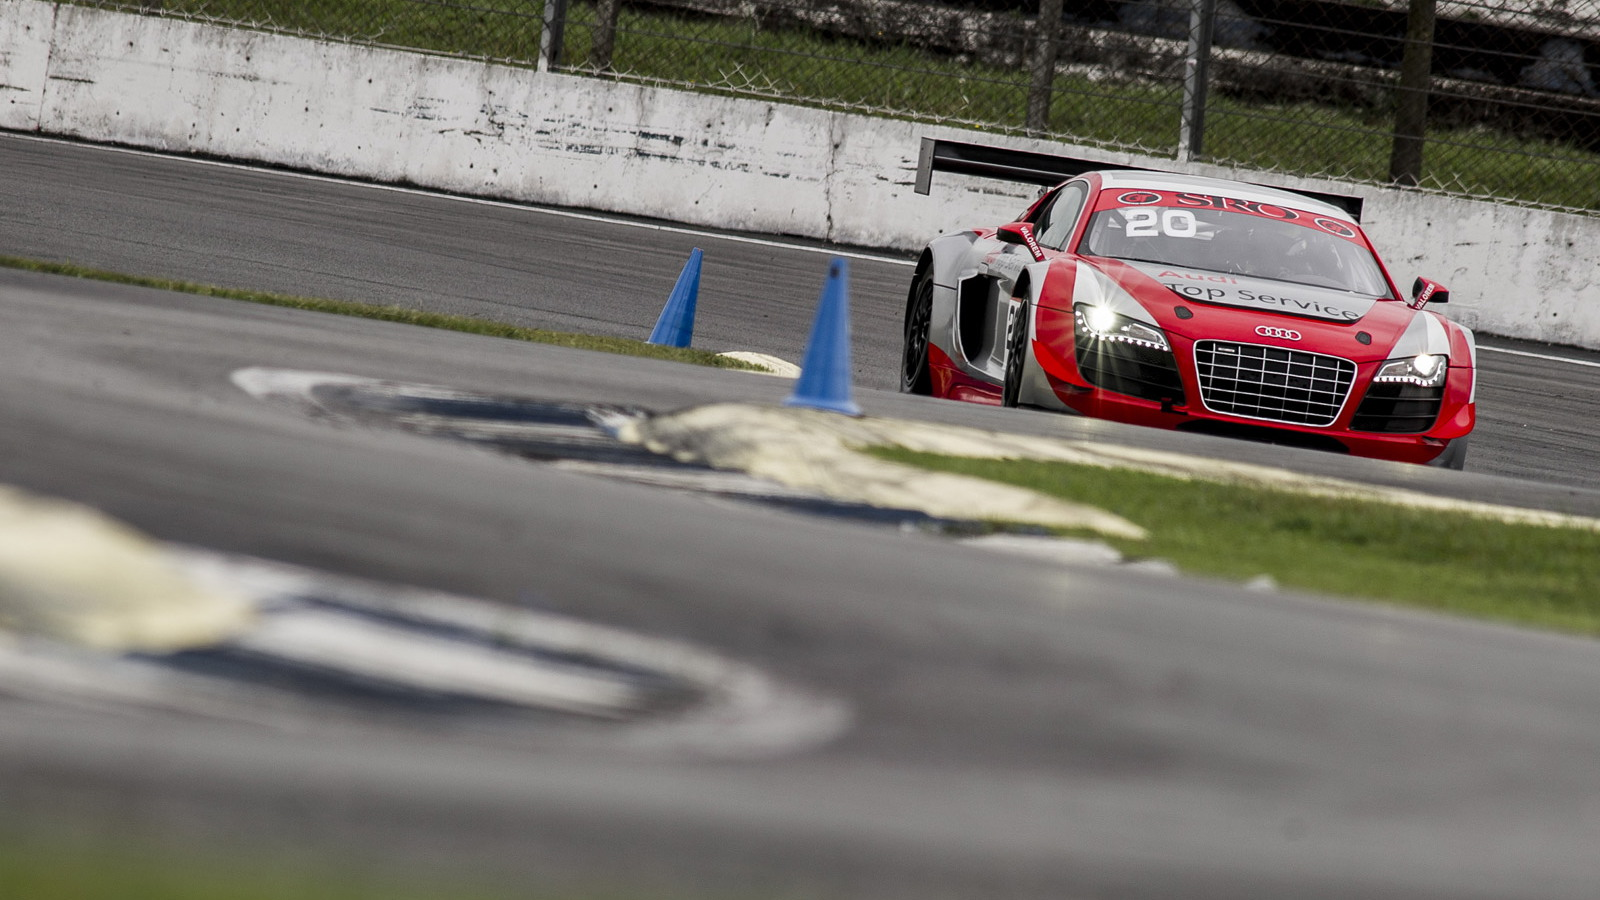 2013 Audi R8 LMS ultra race car